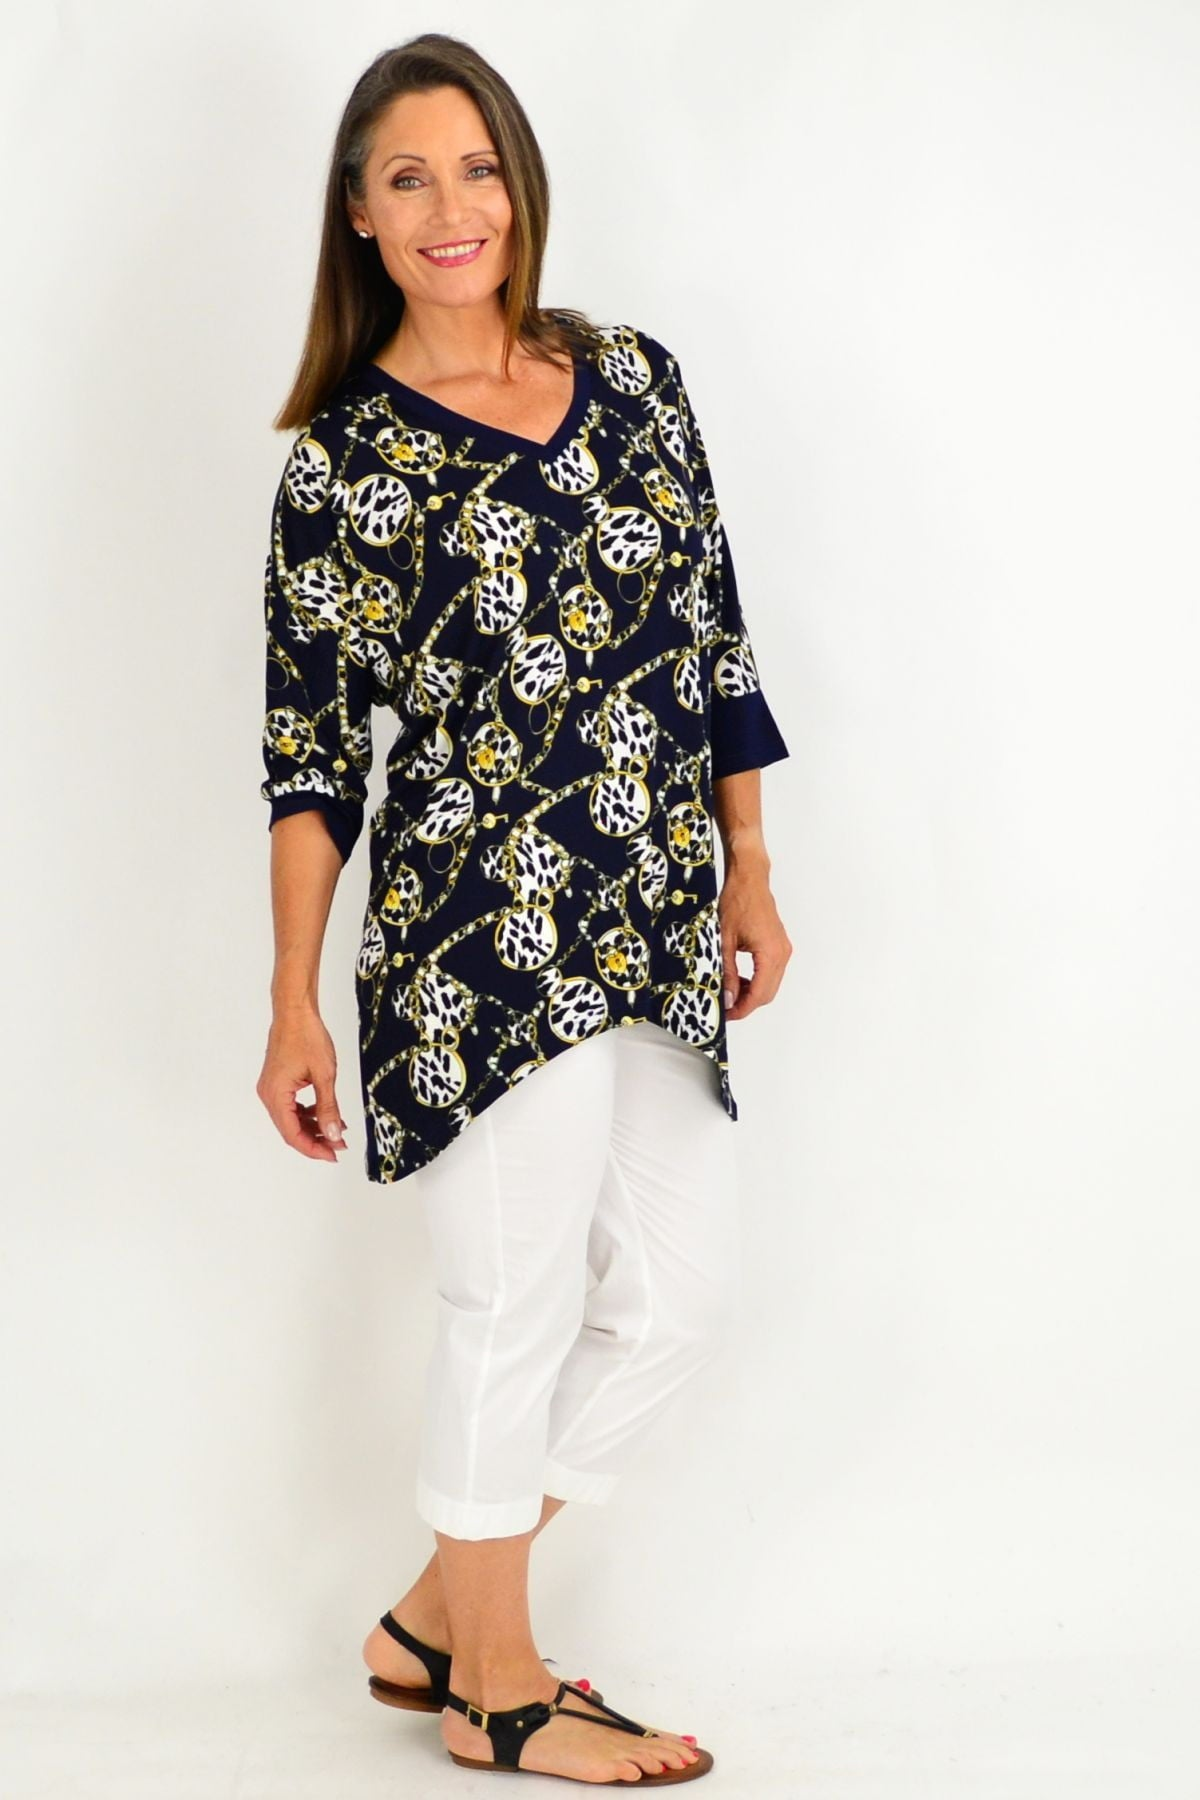 Lyra Chain Tunic | I Love Tunics | Tunic Tops | Tunic | Tunic Dresses  | womens clothing online